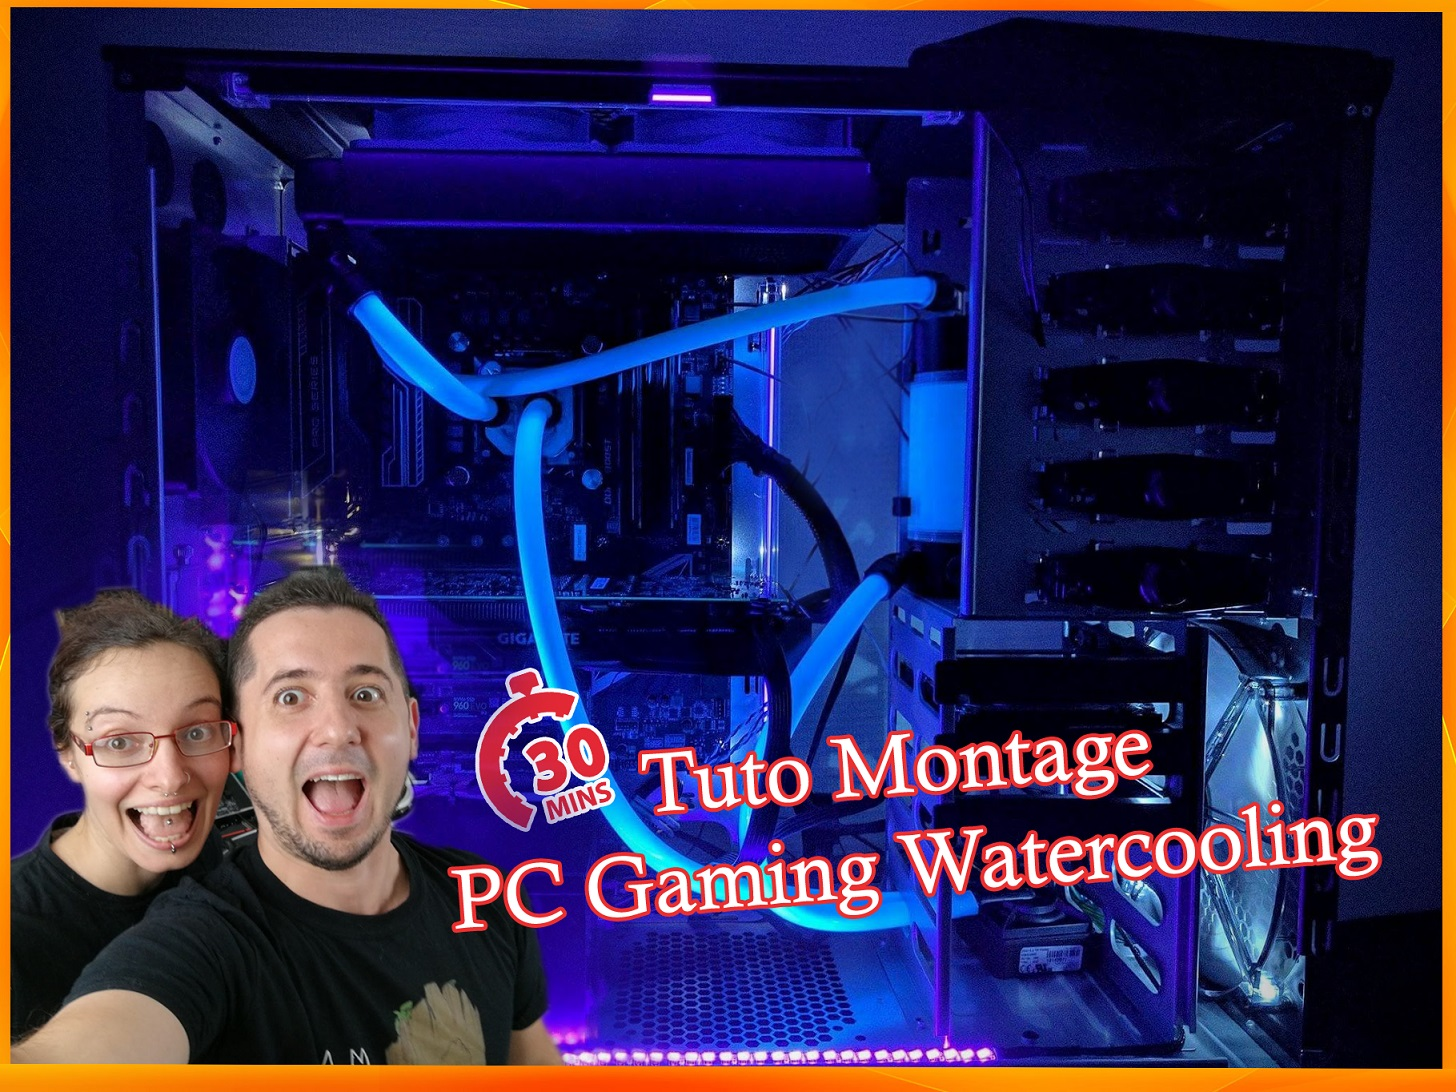 Tuto : monter son Pc gaming watercooling en 30mn avec Harleen_Fae